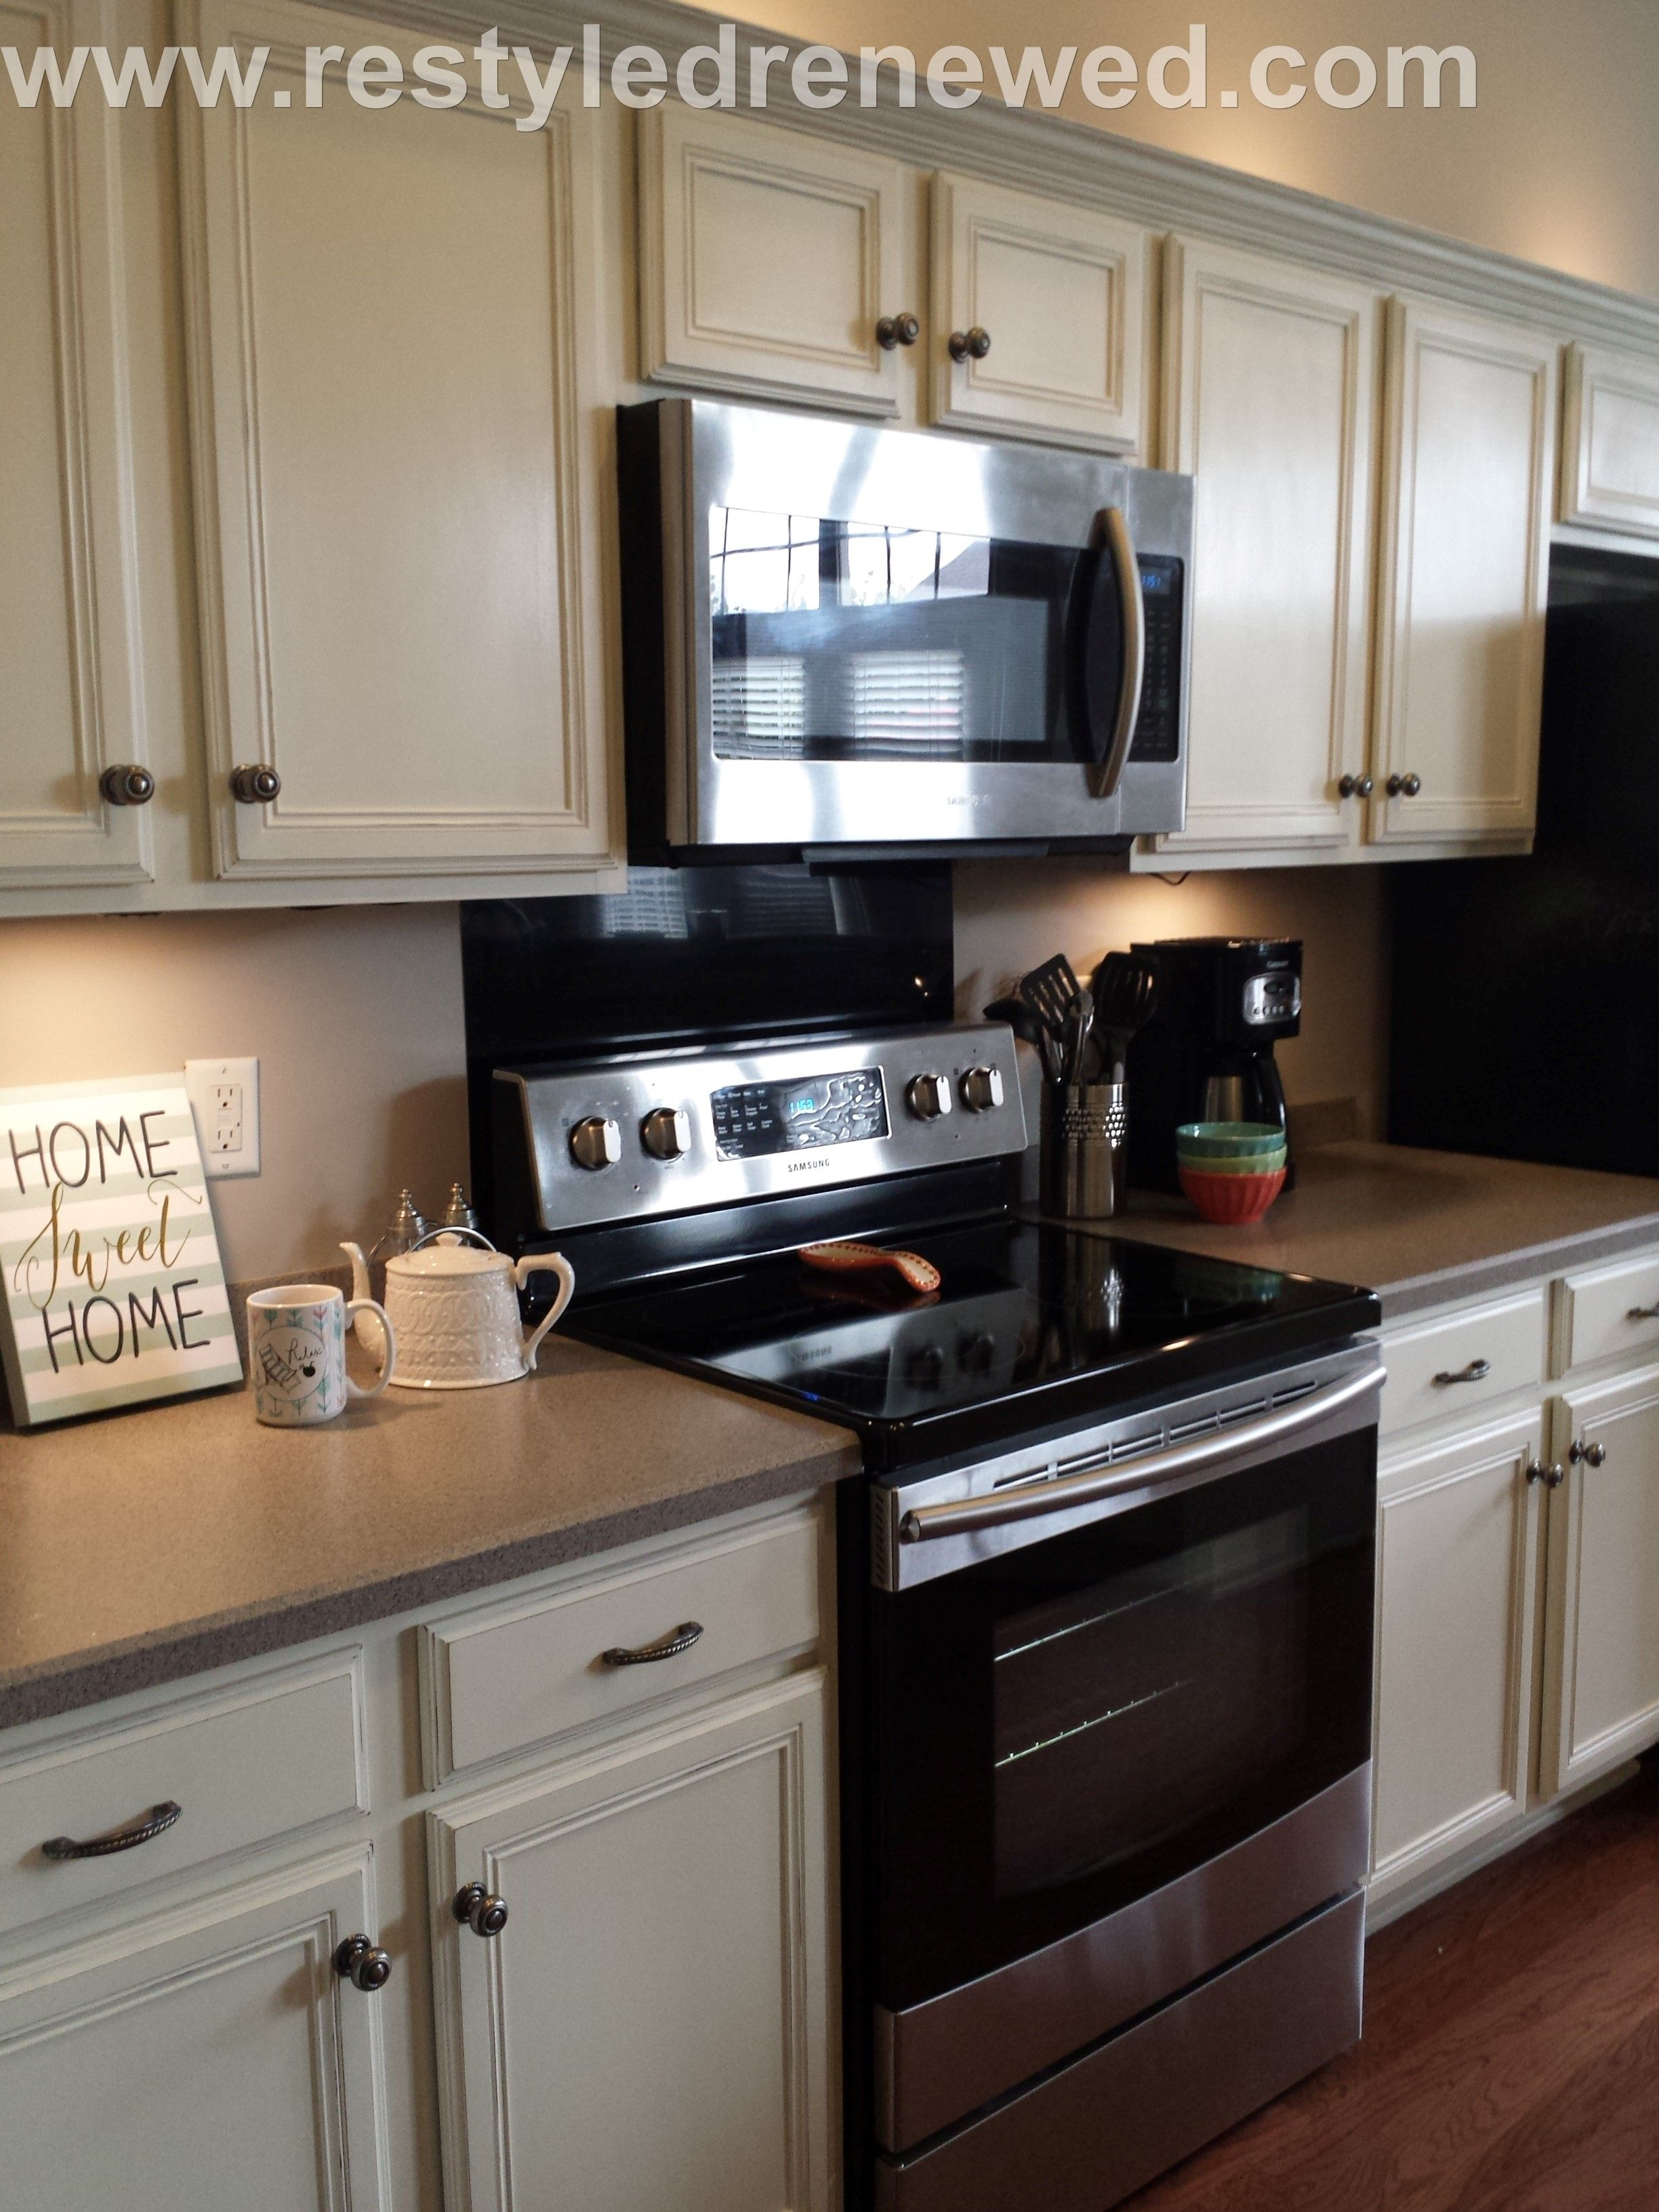 Painting Cabinets With Chalk Paint Annie Sloan Kitchen Cabinets Annie Sloan Chalk Paint Kitchen Cabinets Chalk Paint Kitchen Cabinets